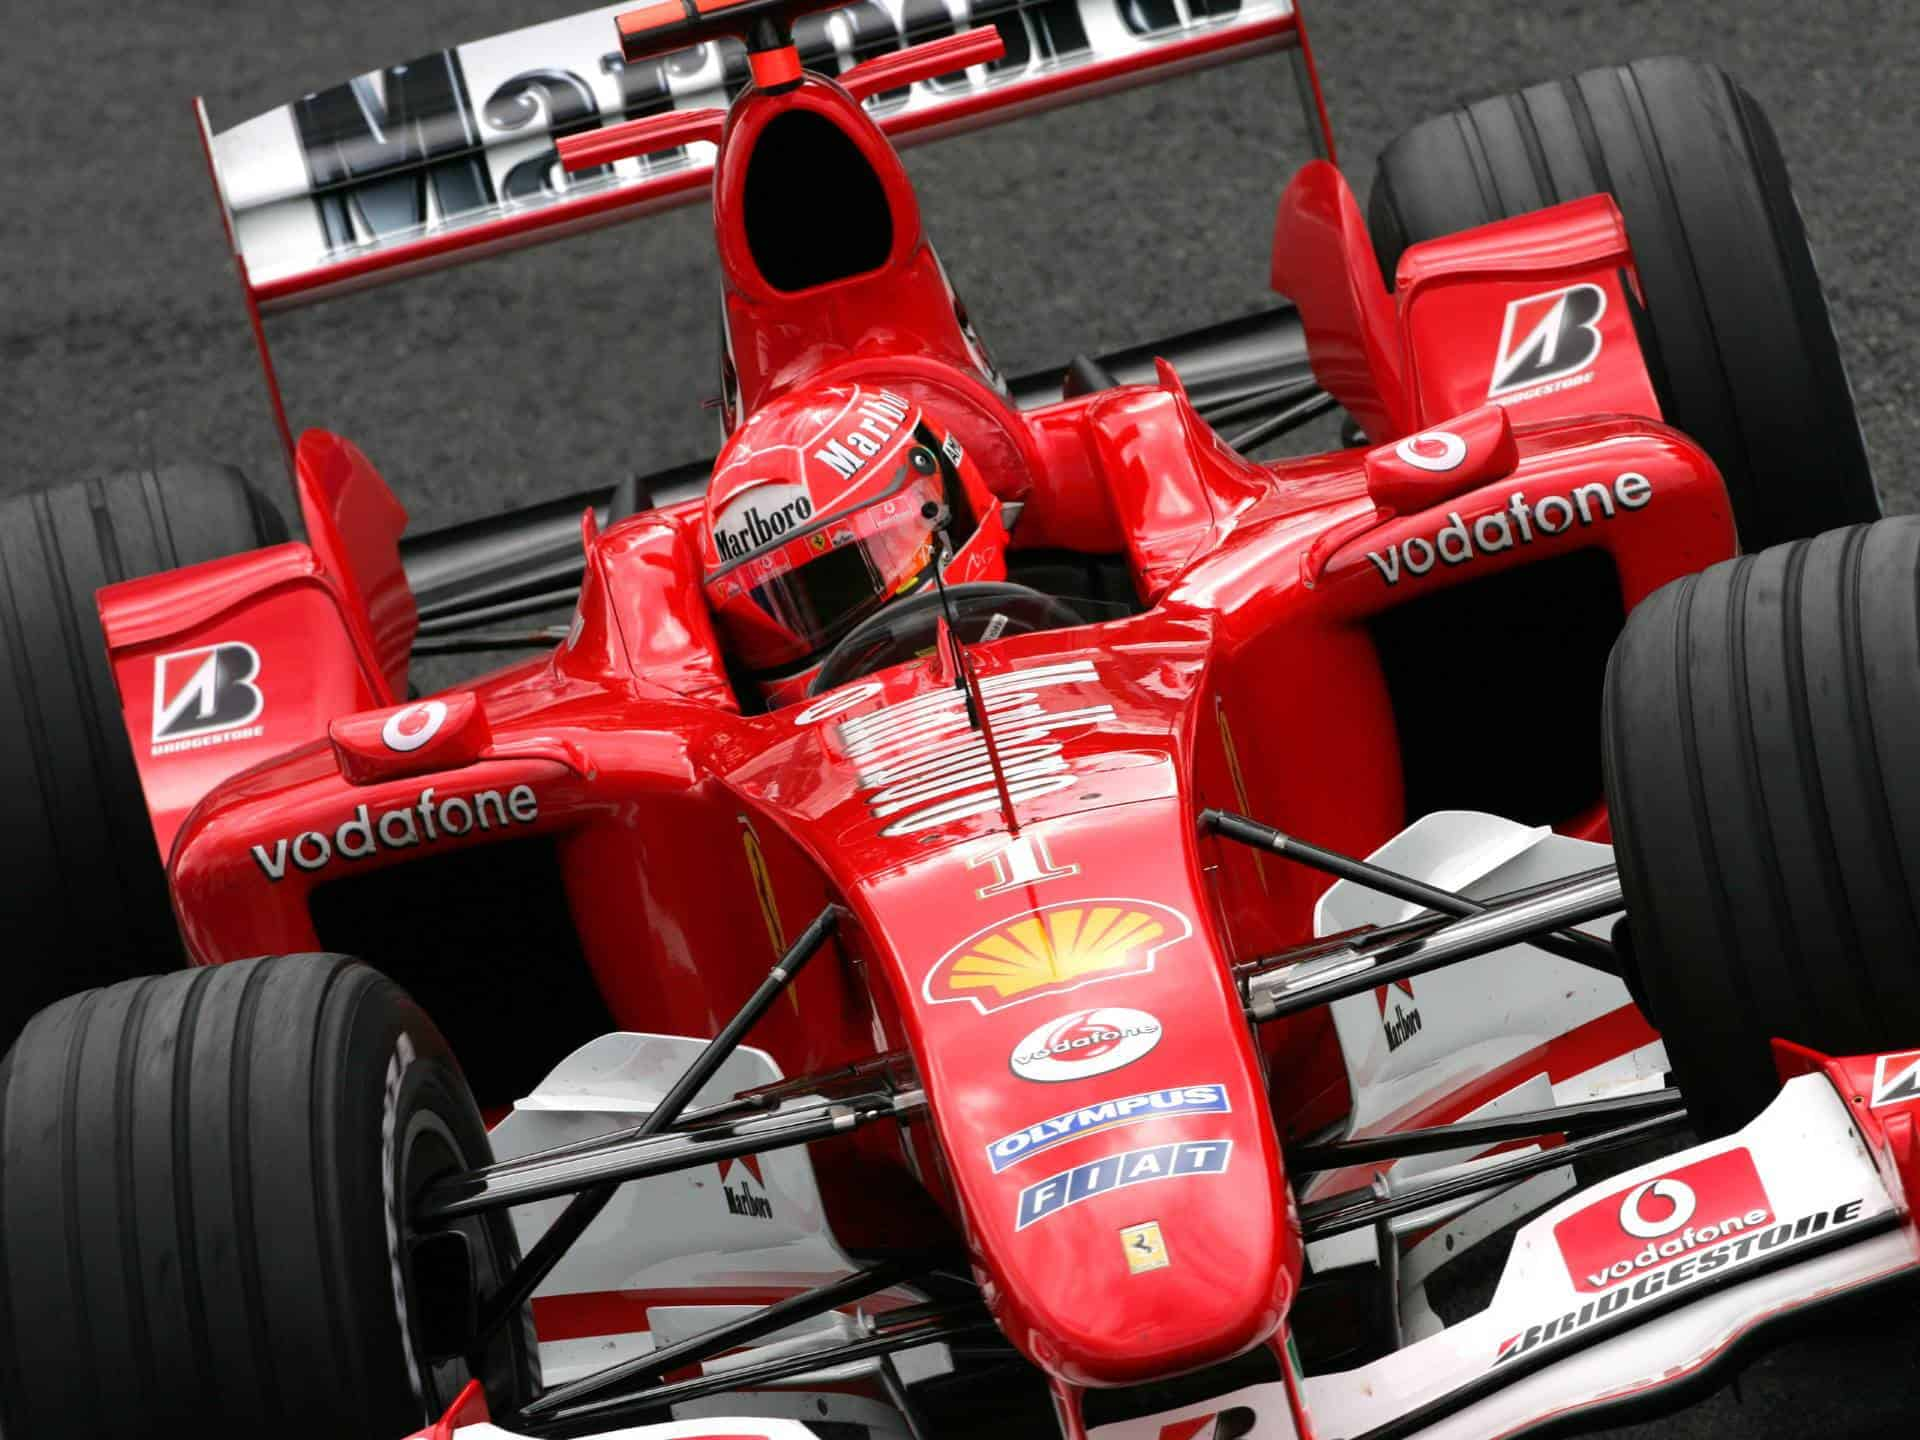 michael schumacher ferrari f2004 belgian gp f1 2004 photo. Black Bedroom Furniture Sets. Home Design Ideas